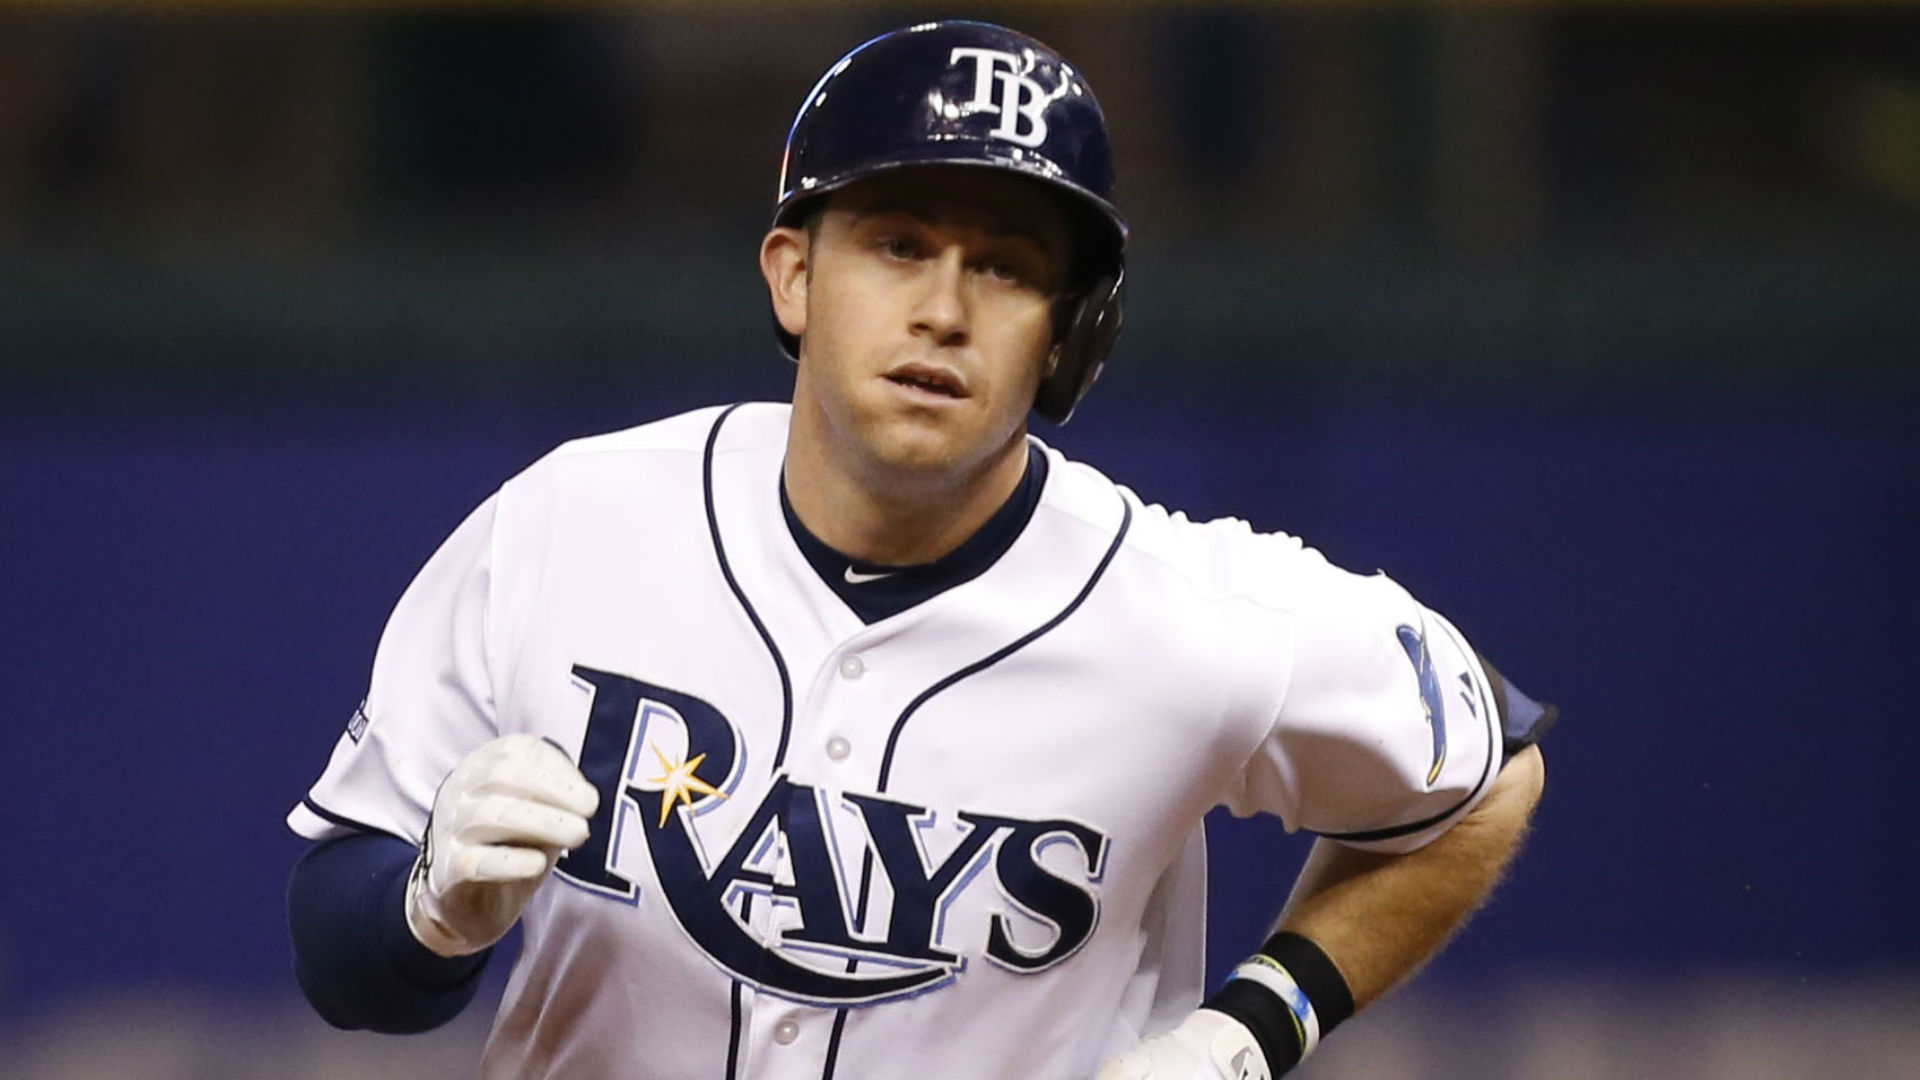 Fantasy baseball team report: Tampa Bay Rays